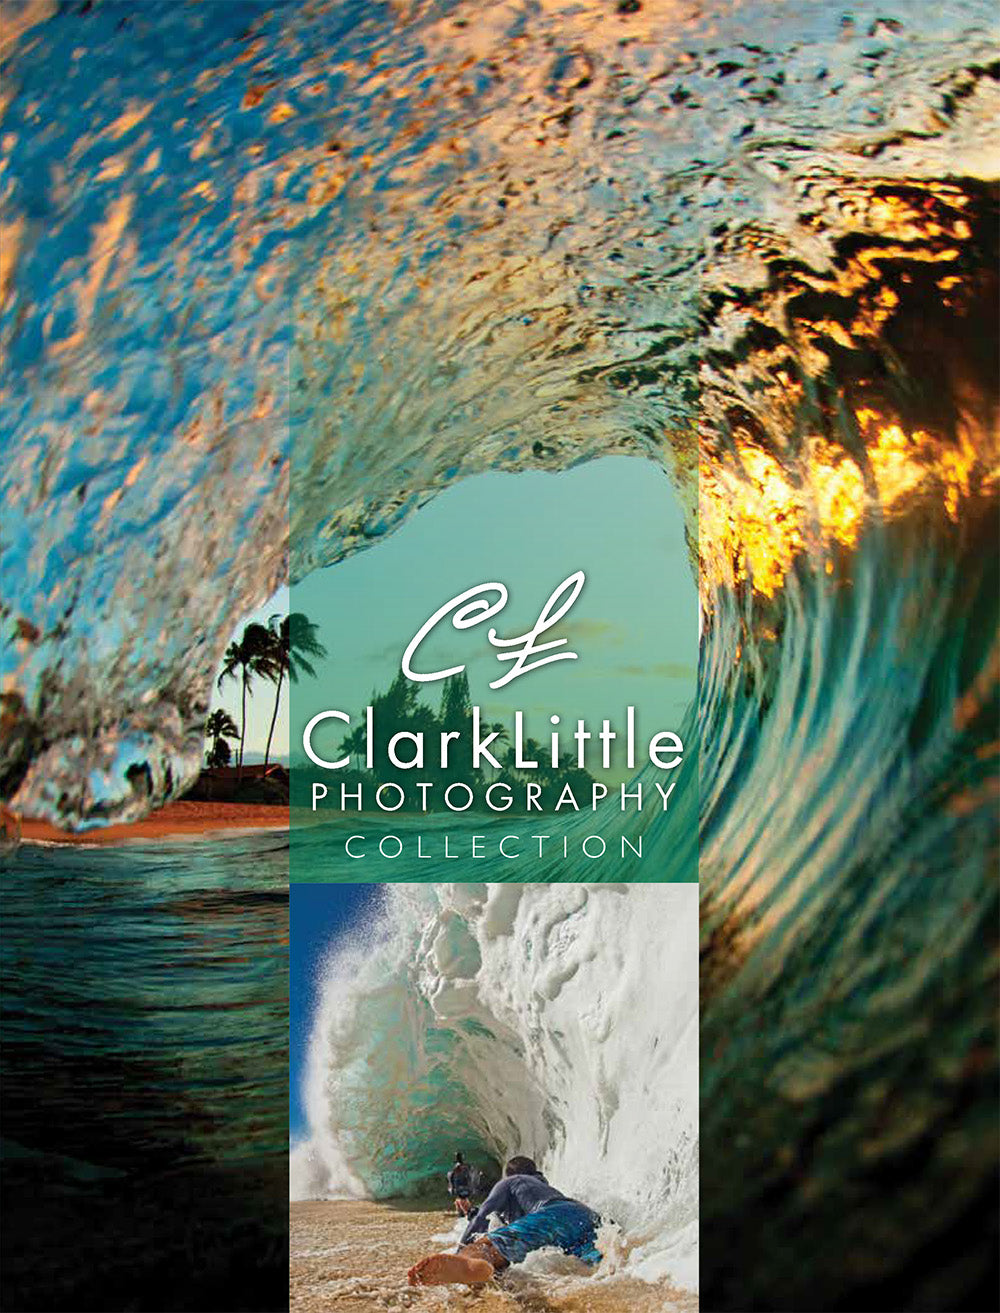 Crazy Shirts Summer 2021 Catalog cover with Clark Little photo and Clark Little shooting